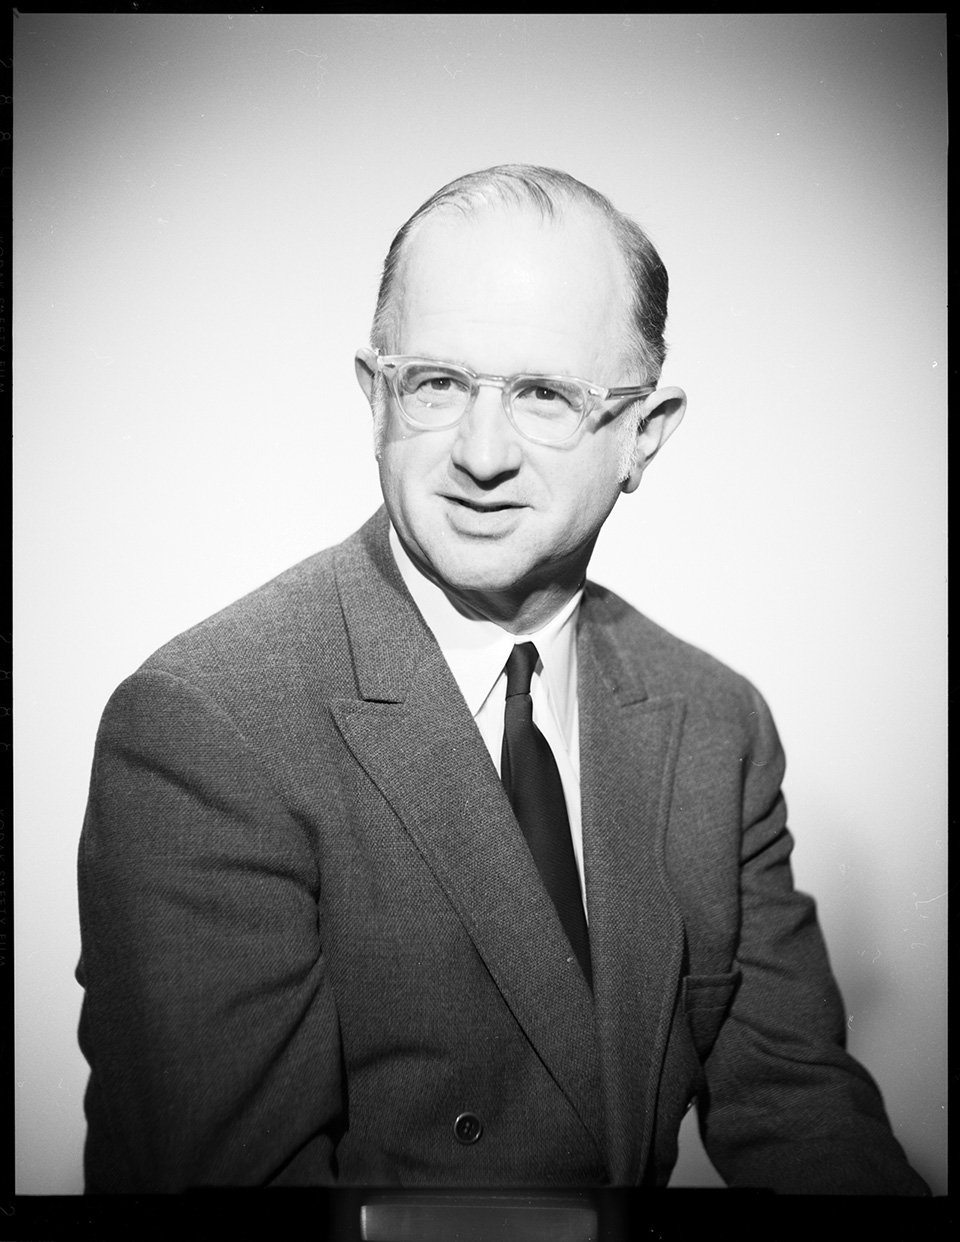 Close-up/headshot of R.S. Mendelsohn in a suit and looking into the distance and slightly to the right of the camera